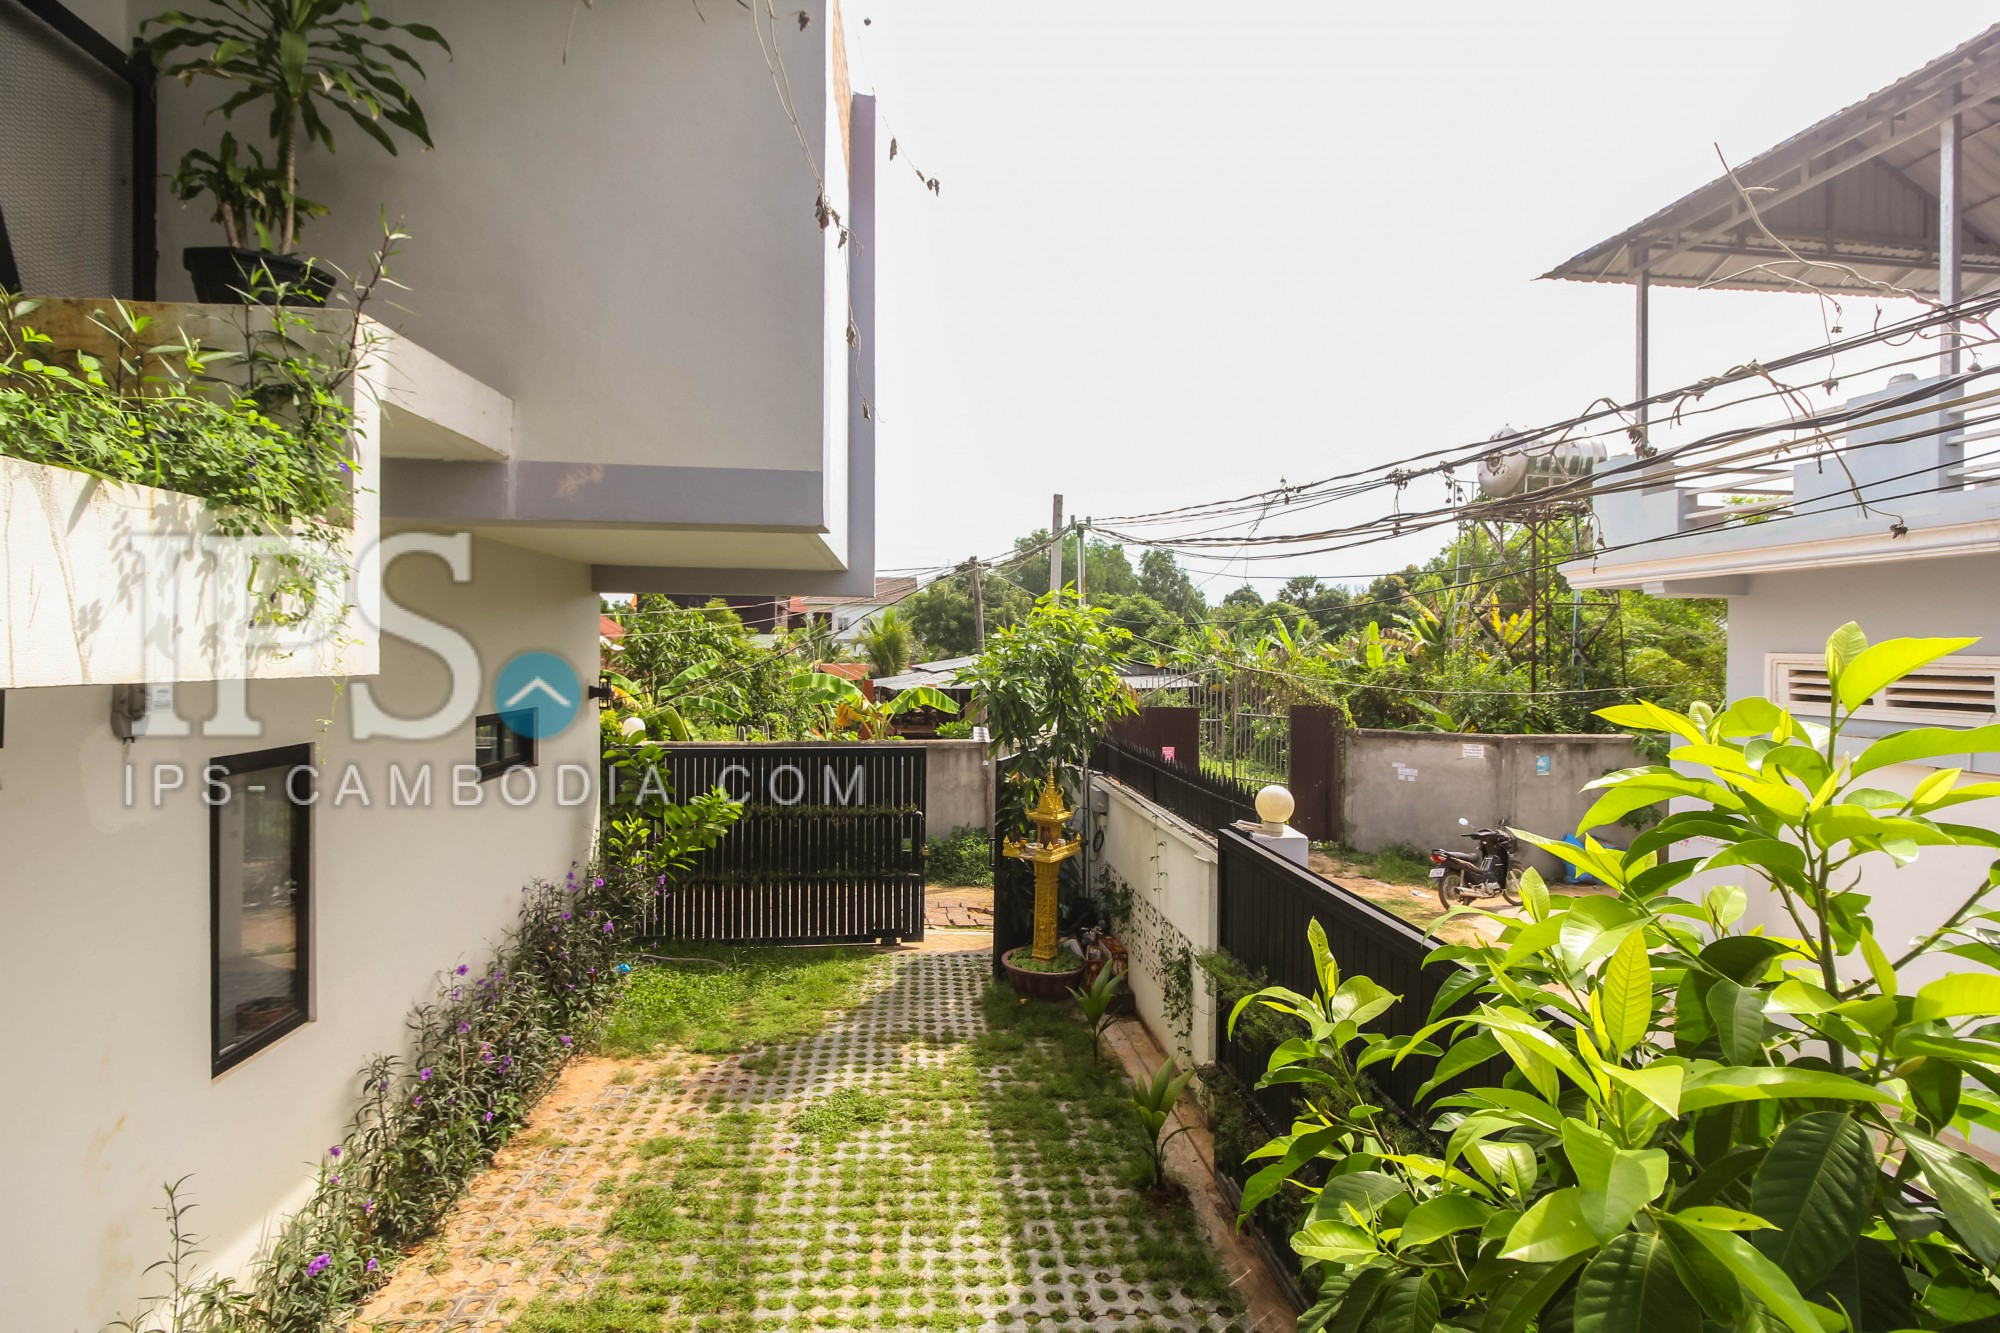 1 Modern Bedroom Apartment For Rent - Slor Kram, Siem Reap